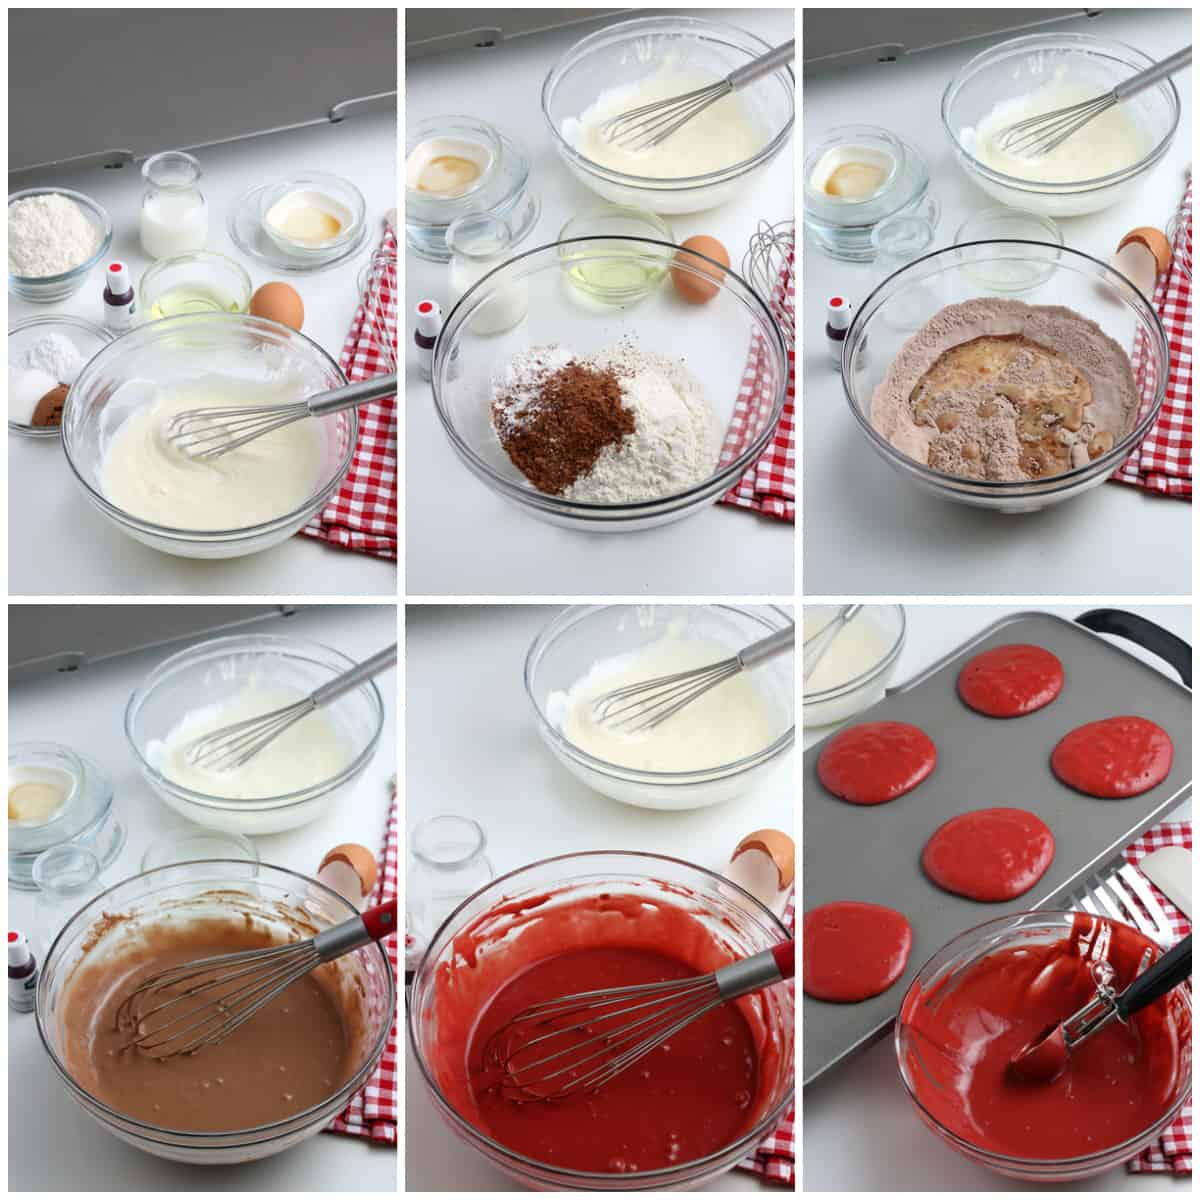 Step by step photo on how to make Red Velvet Pancakes